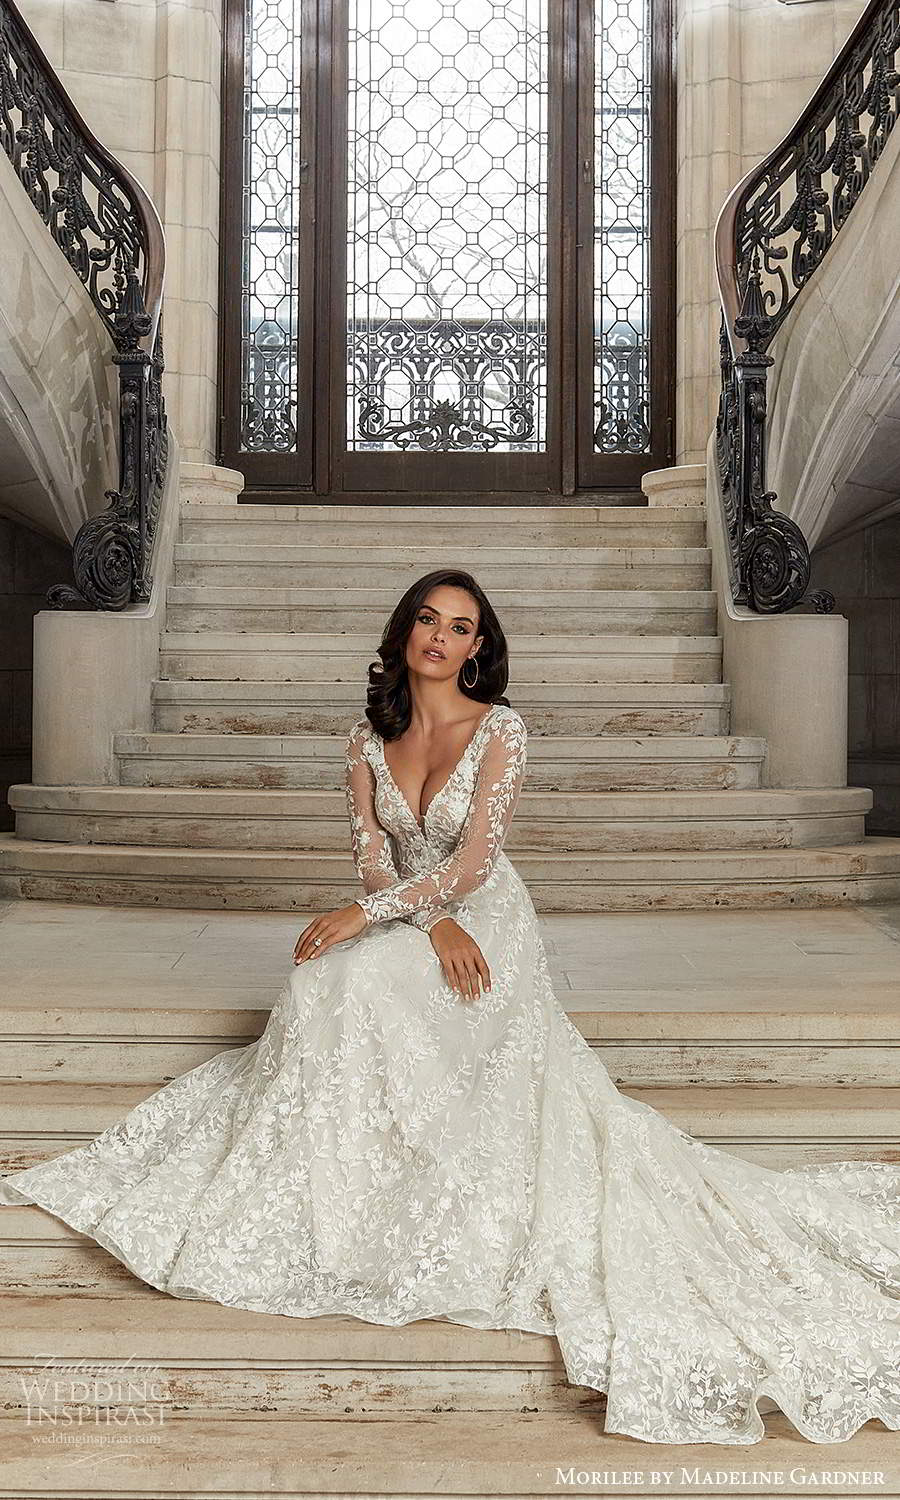 morilee madeline gardner spring 2022 bridal sheer long sleeves v neckline fully embellished lace a line ball gown wedding dress chapel train keyhole back (7) fv